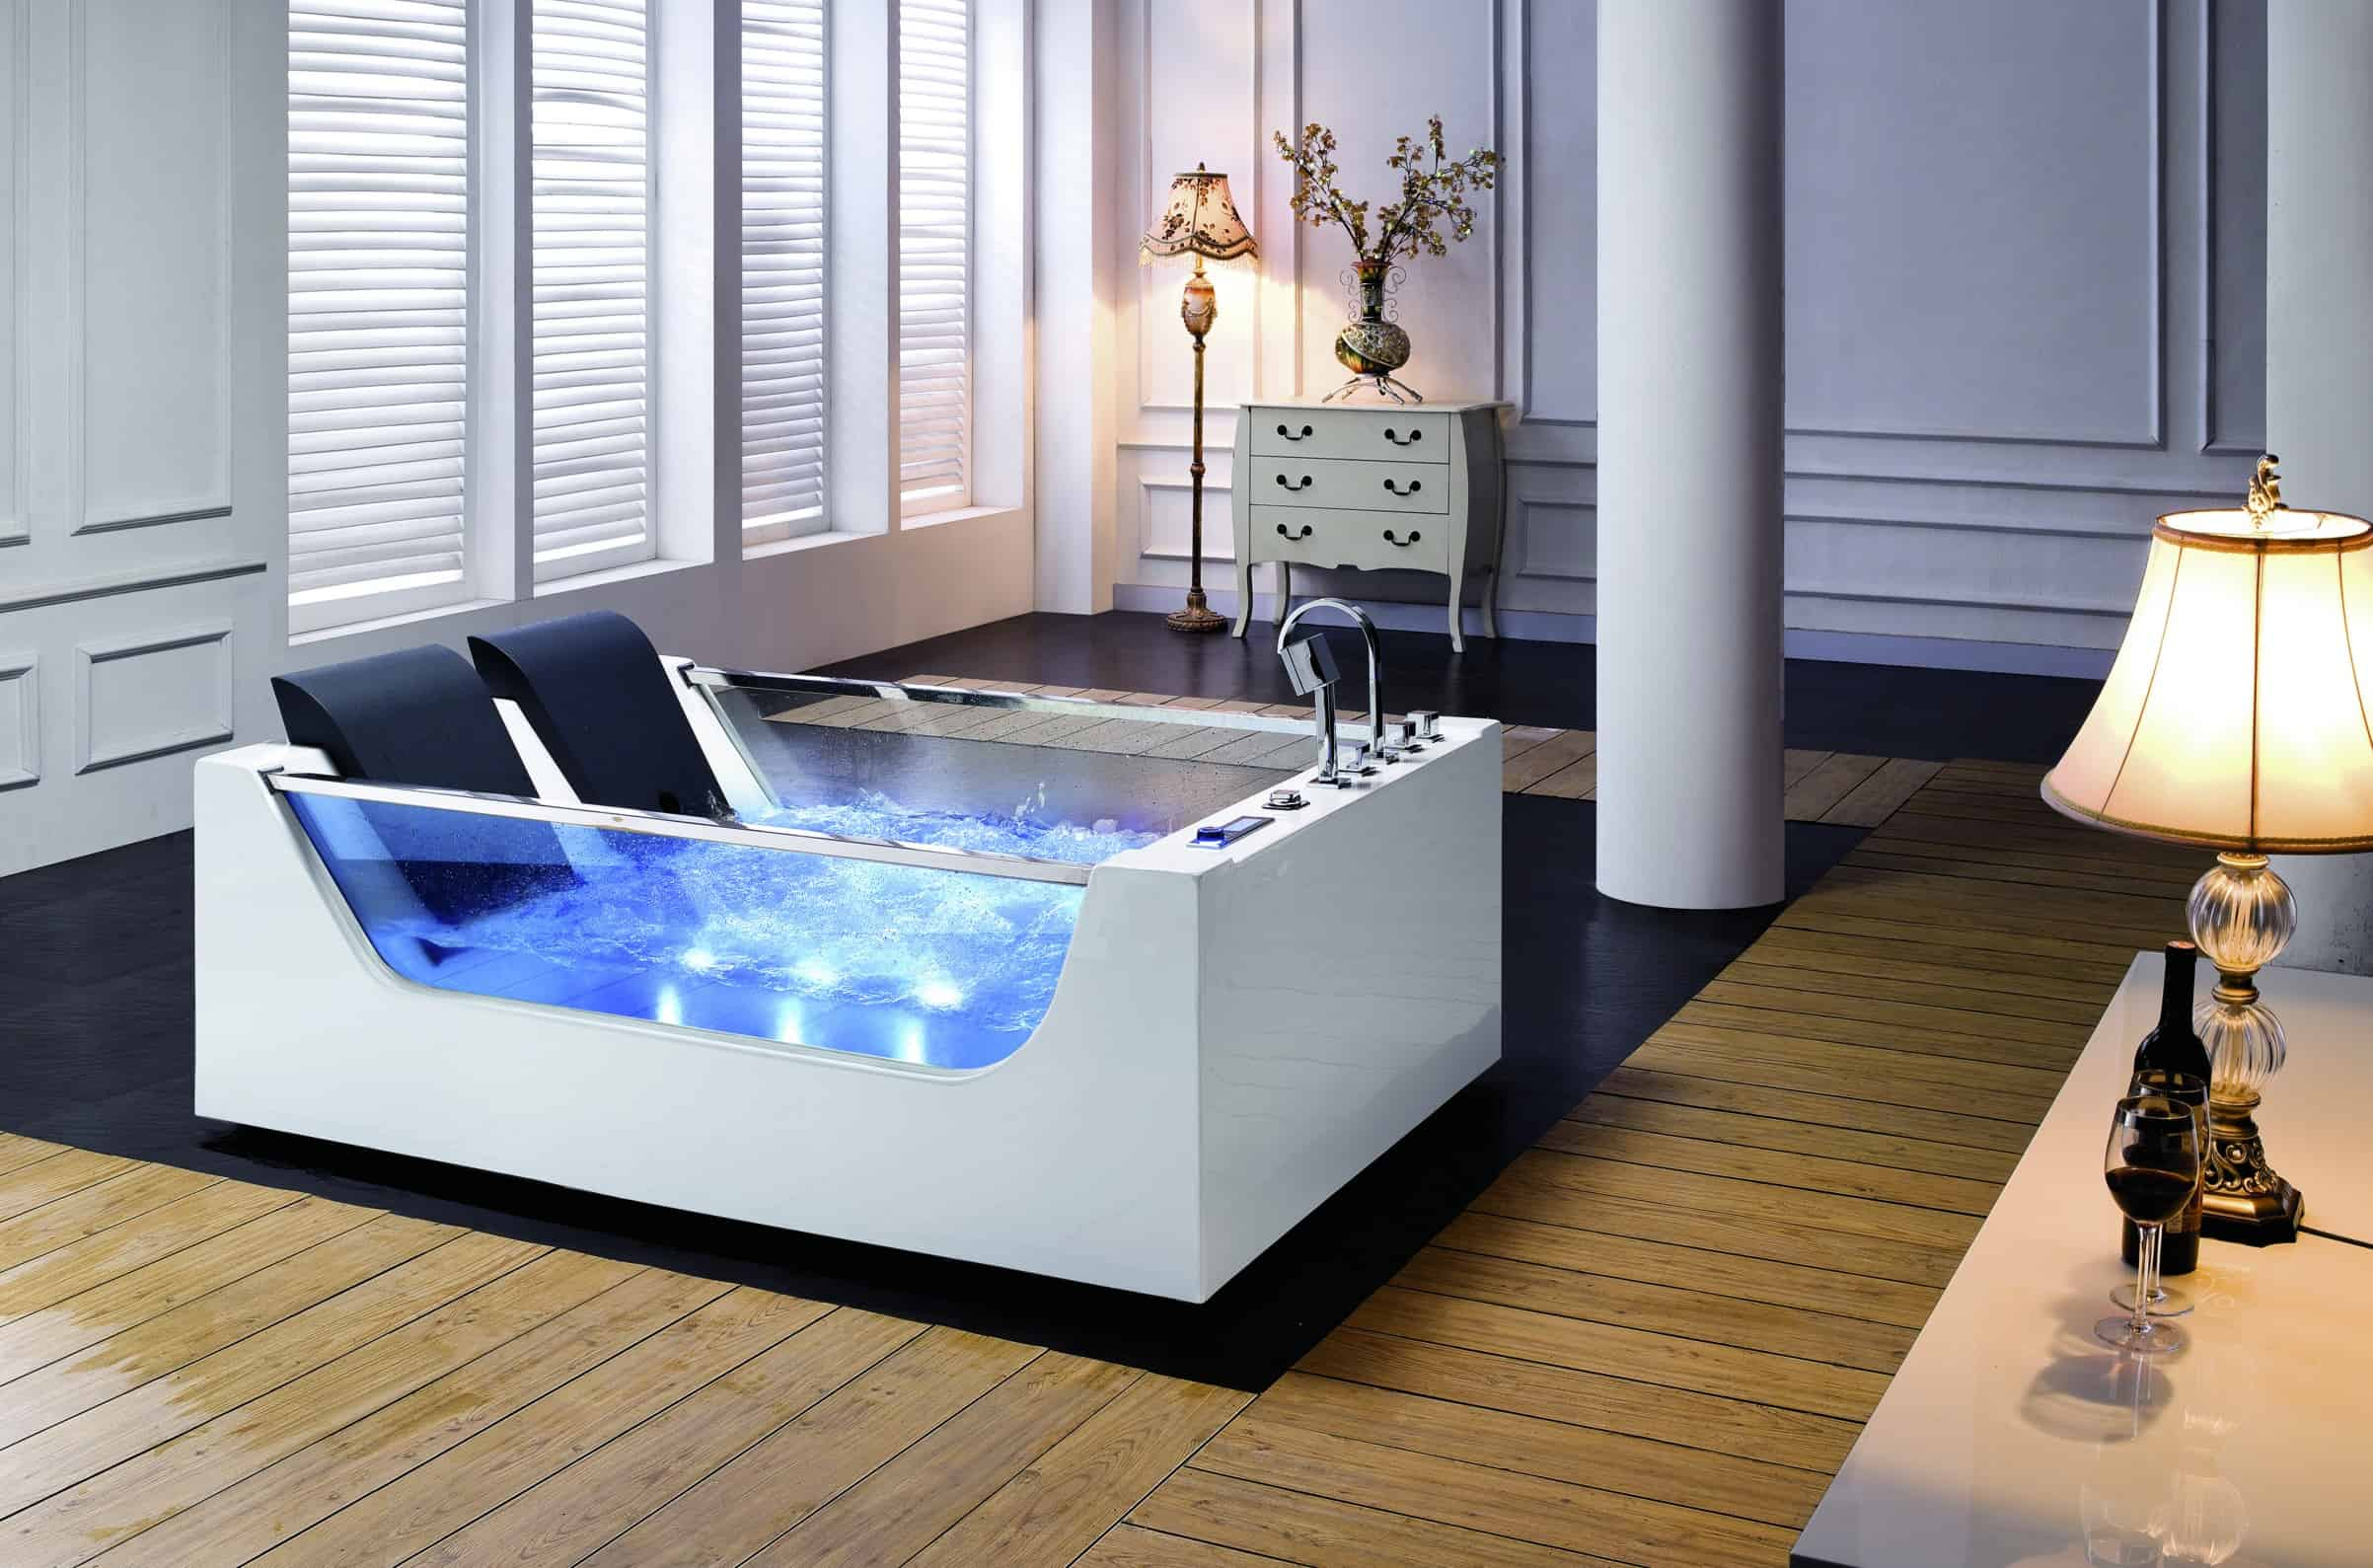 miami Spas Bath slide